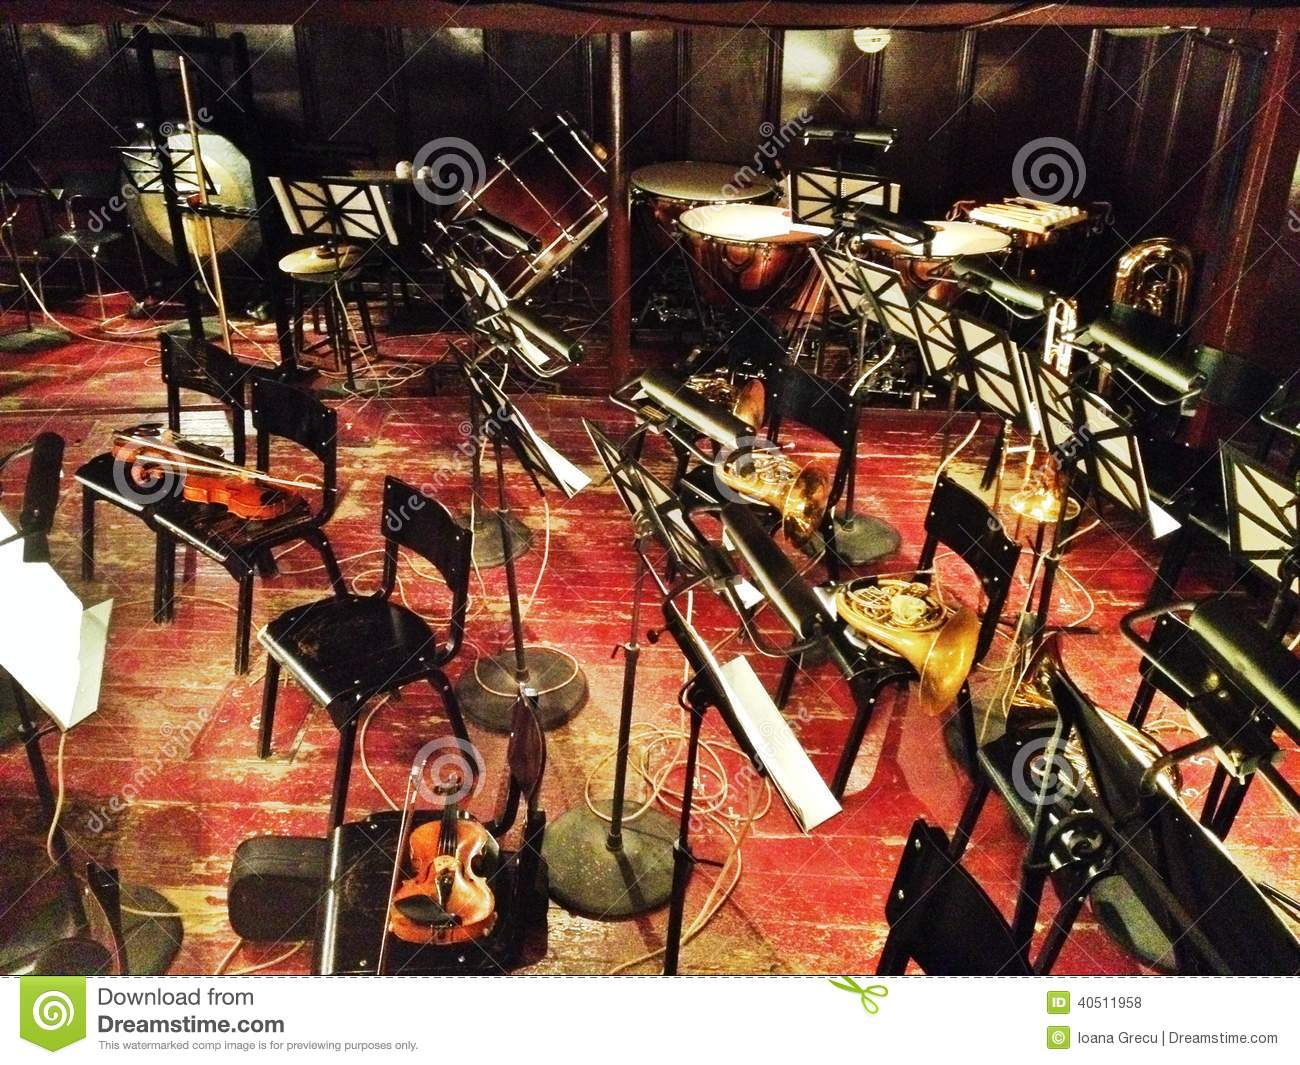 Orchestra instruments stock photo Image of empty